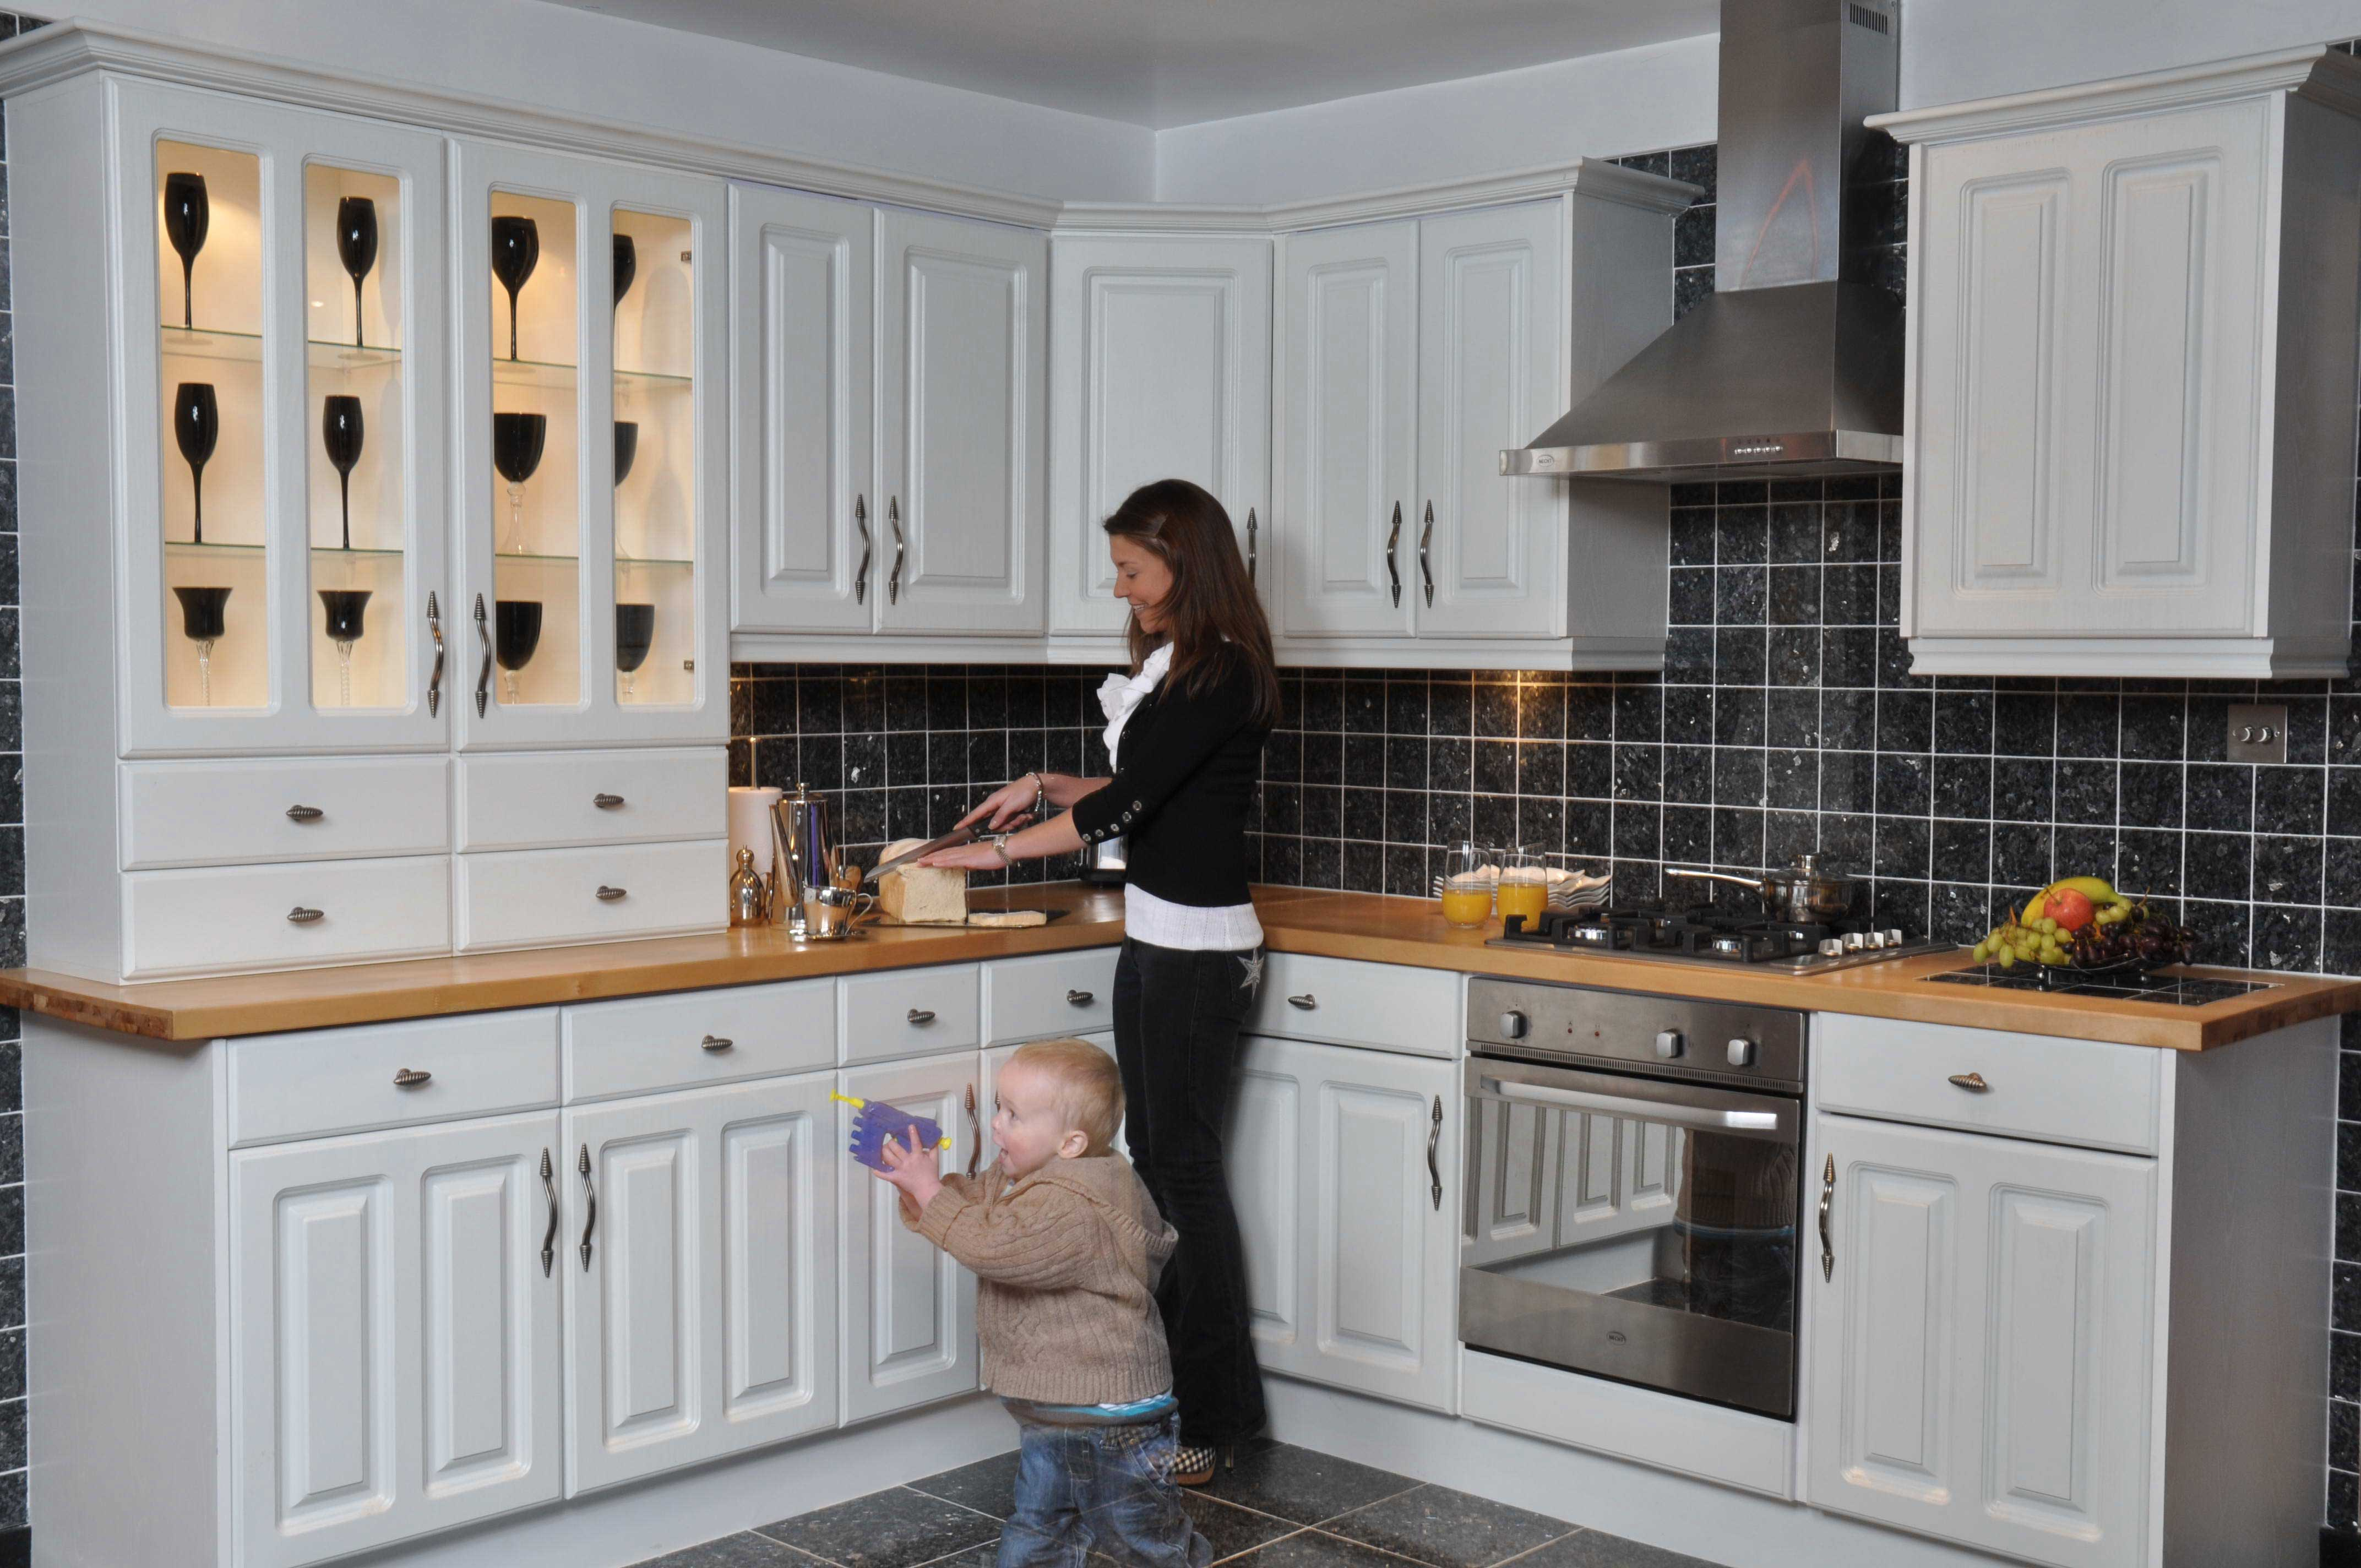 Kitchen brighton 1 kitchen brighton cheap kitchens for Where to get a kitchen from